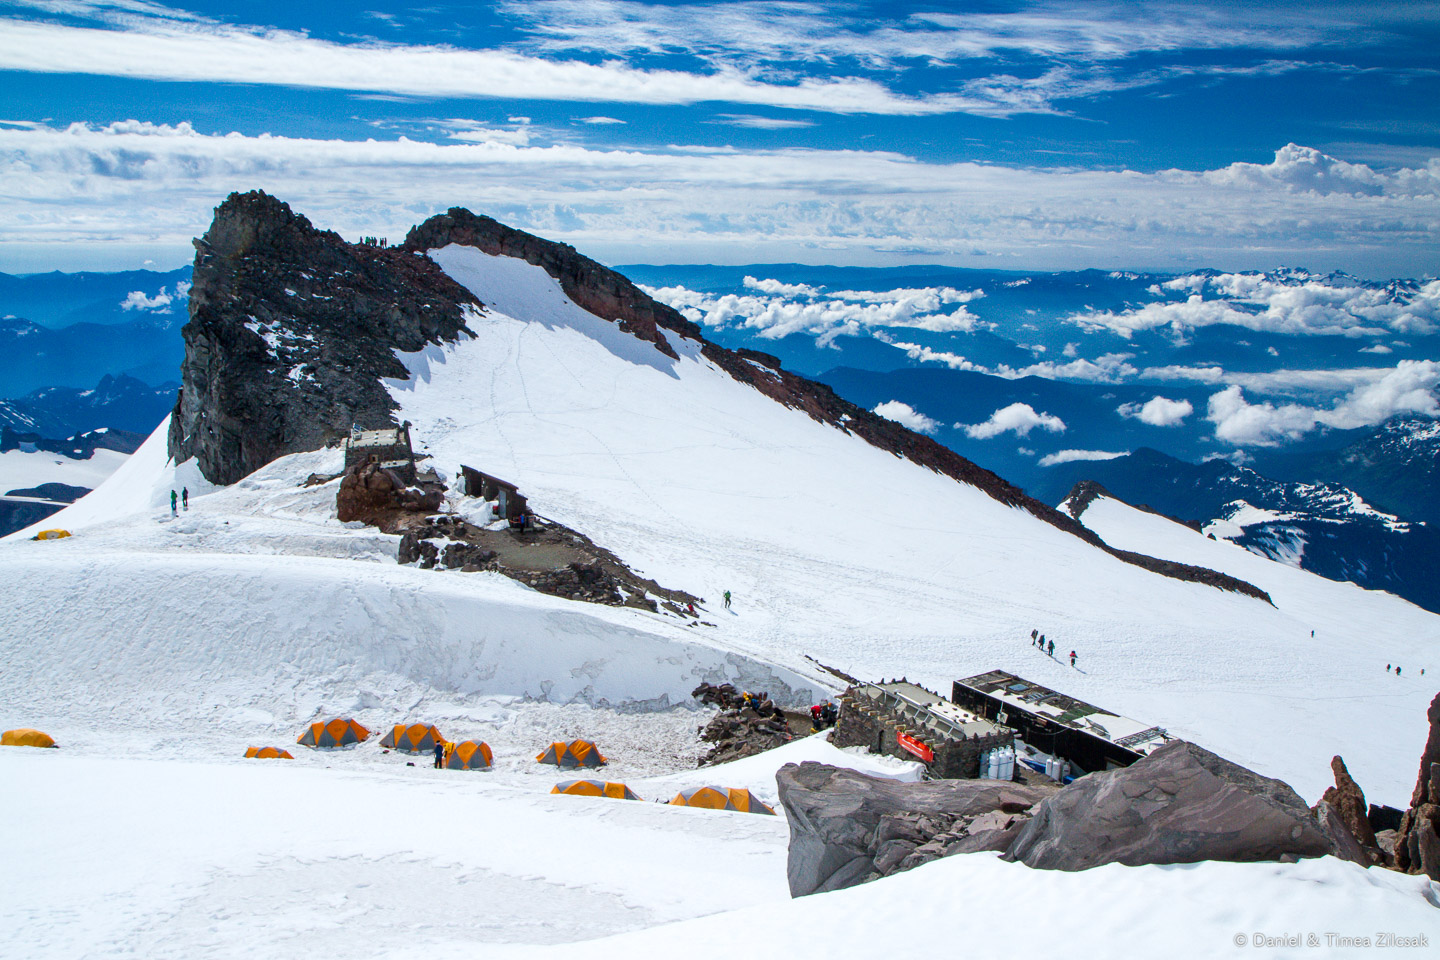 View of Camp Muir from above, including climbers' tents,guides'huts, and the public shelter